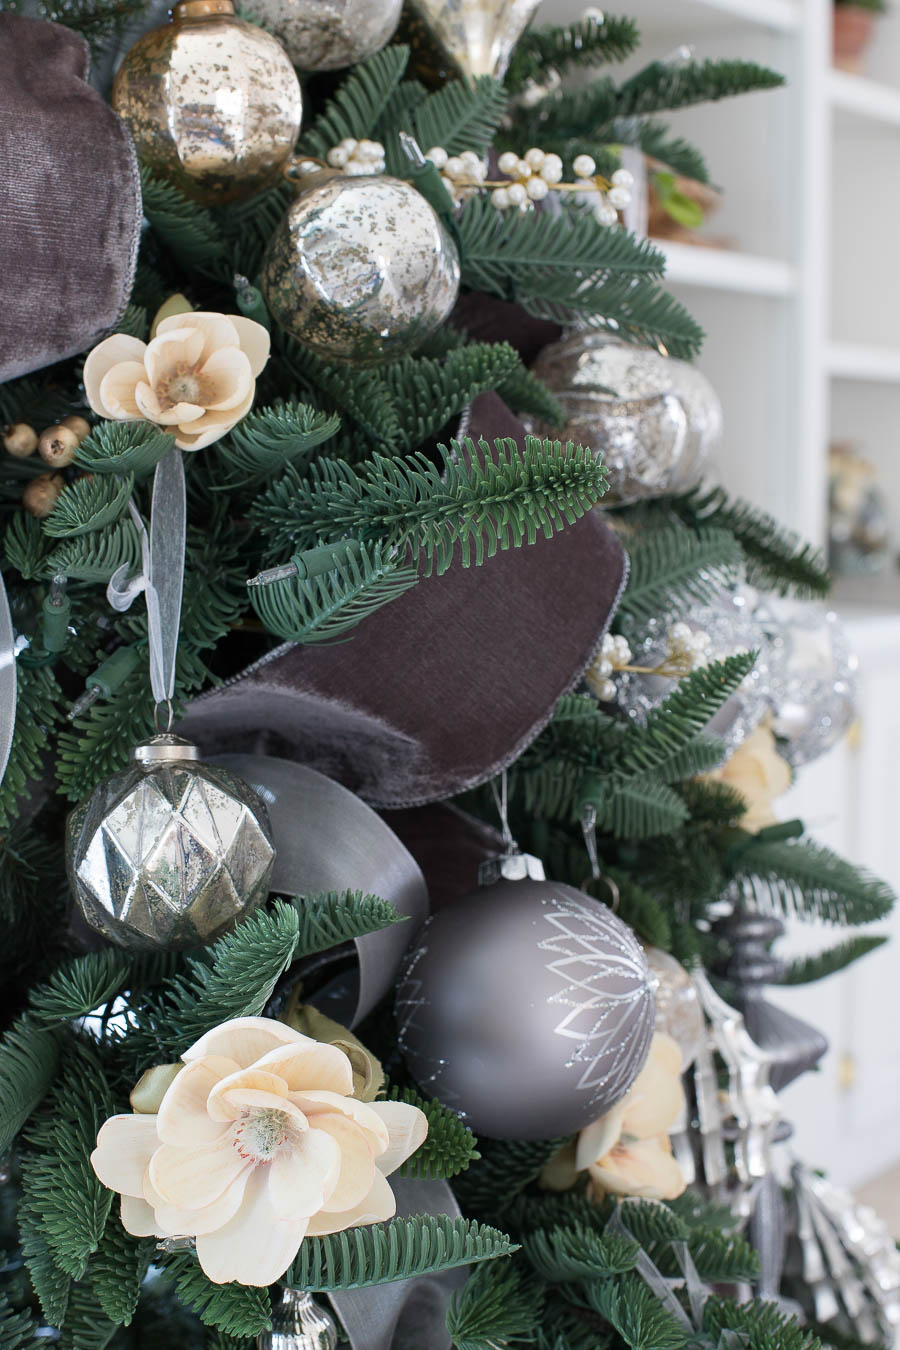 Love how she used faux floral stems along with the velvet ribbon and silver ornaments to decorate her Christmas tree